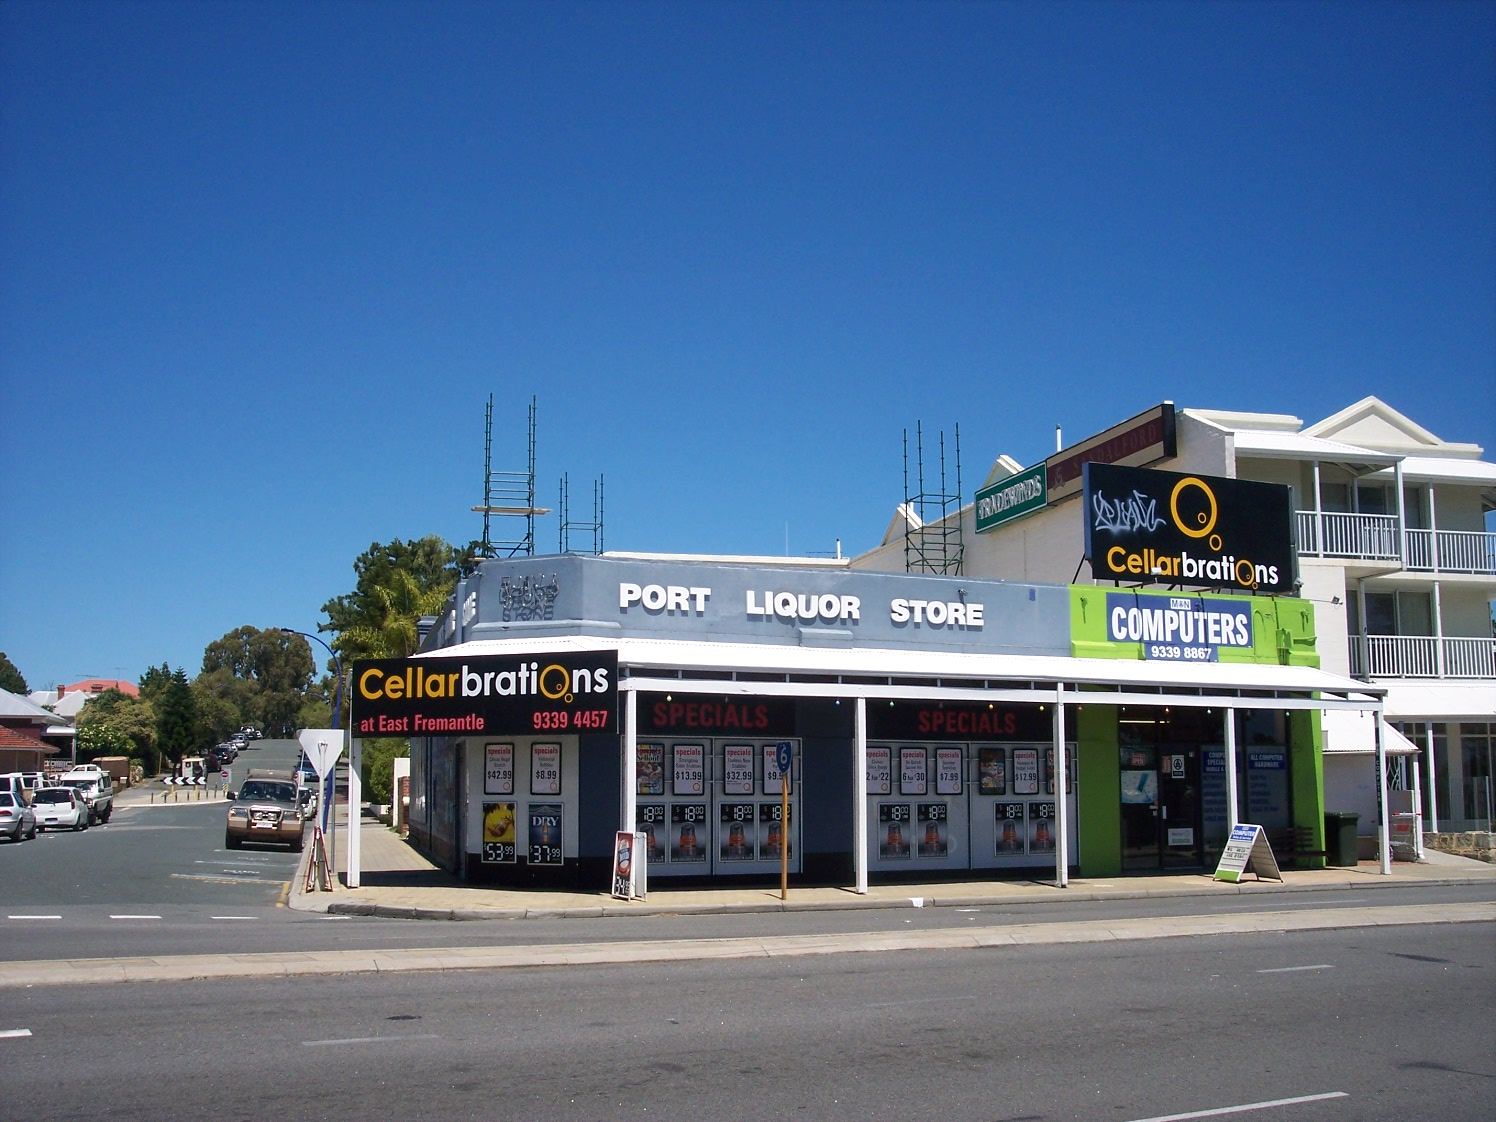 26-2-08 View S 83 Canning Highway.jpg